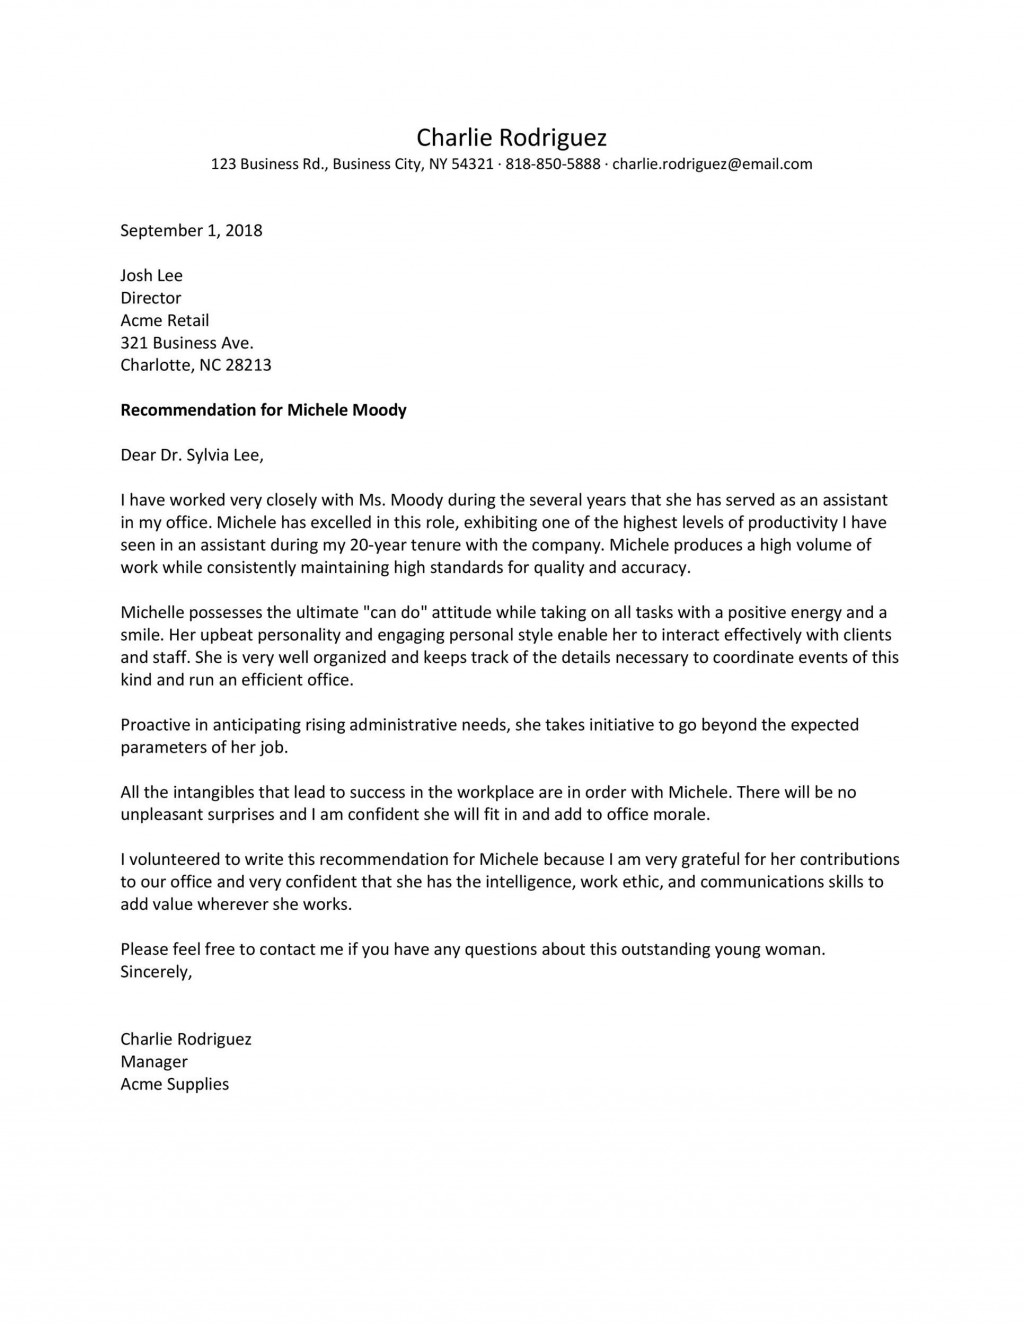 006 Wondrou Personal Letter Of Recommendation Template High Resolution  Templates Character Reference WordLarge